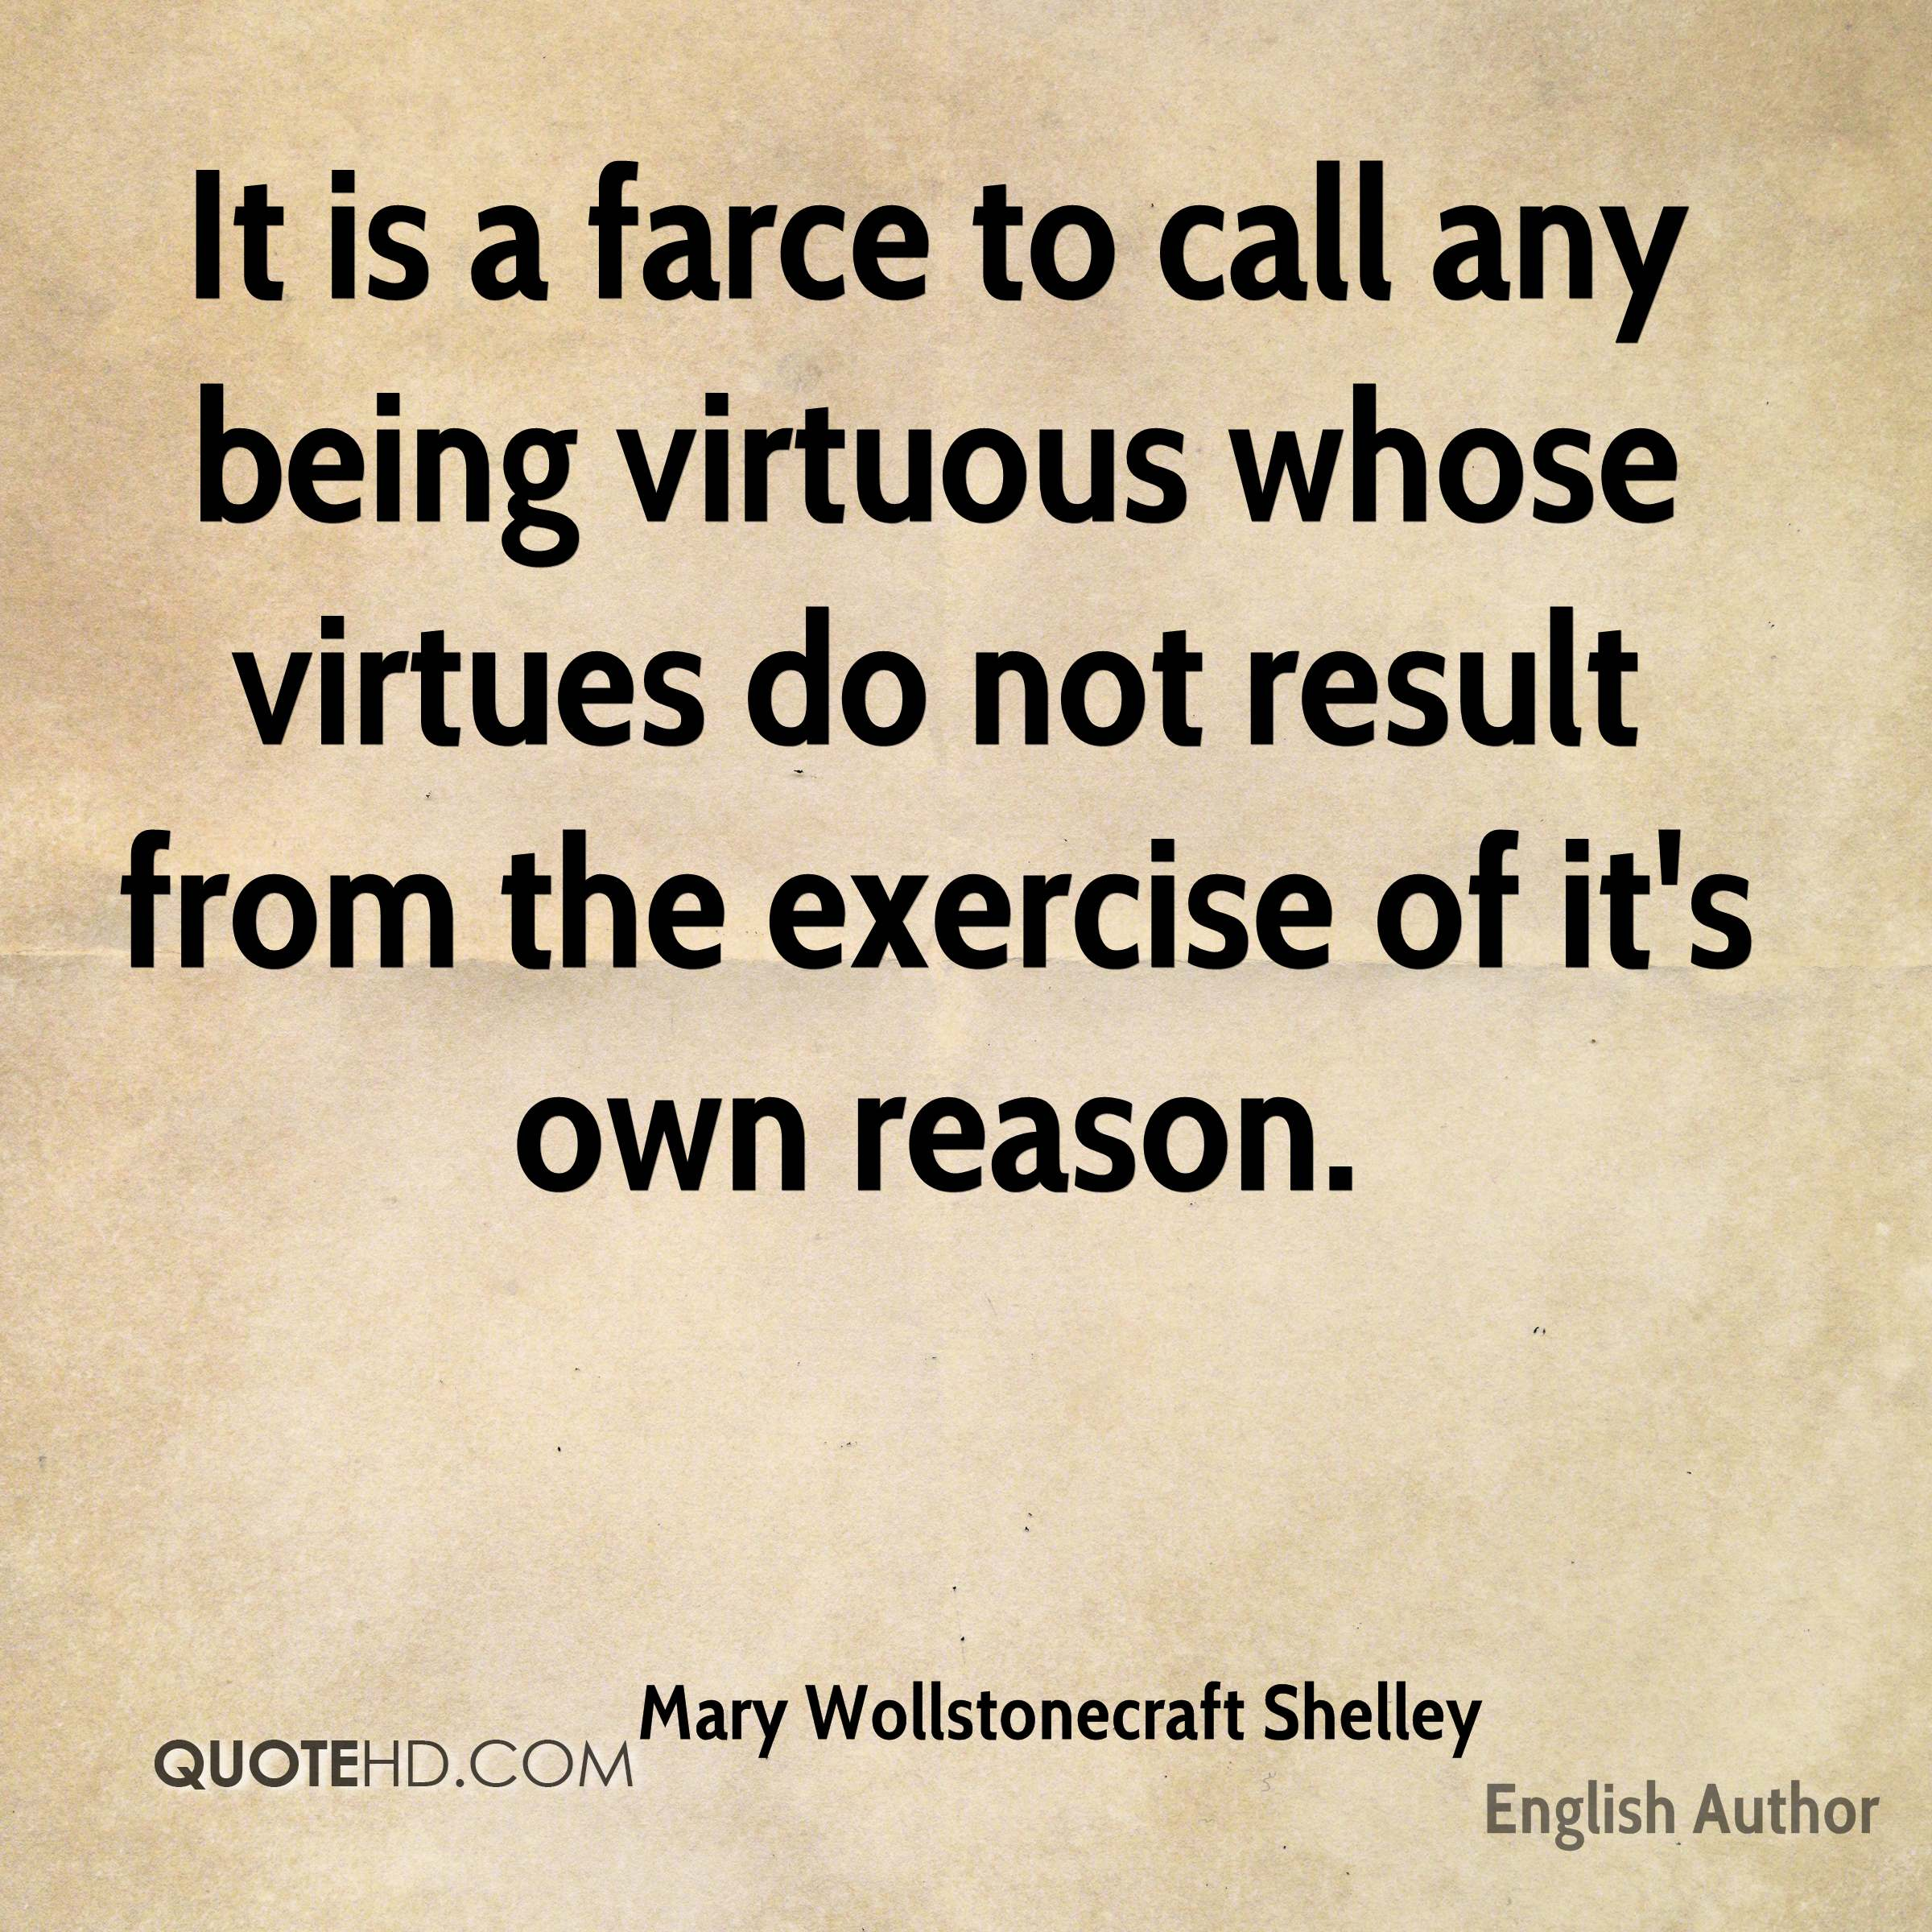 It is a farce to call any being virtuous whose virtues do not result from the exercise of it's own reason.